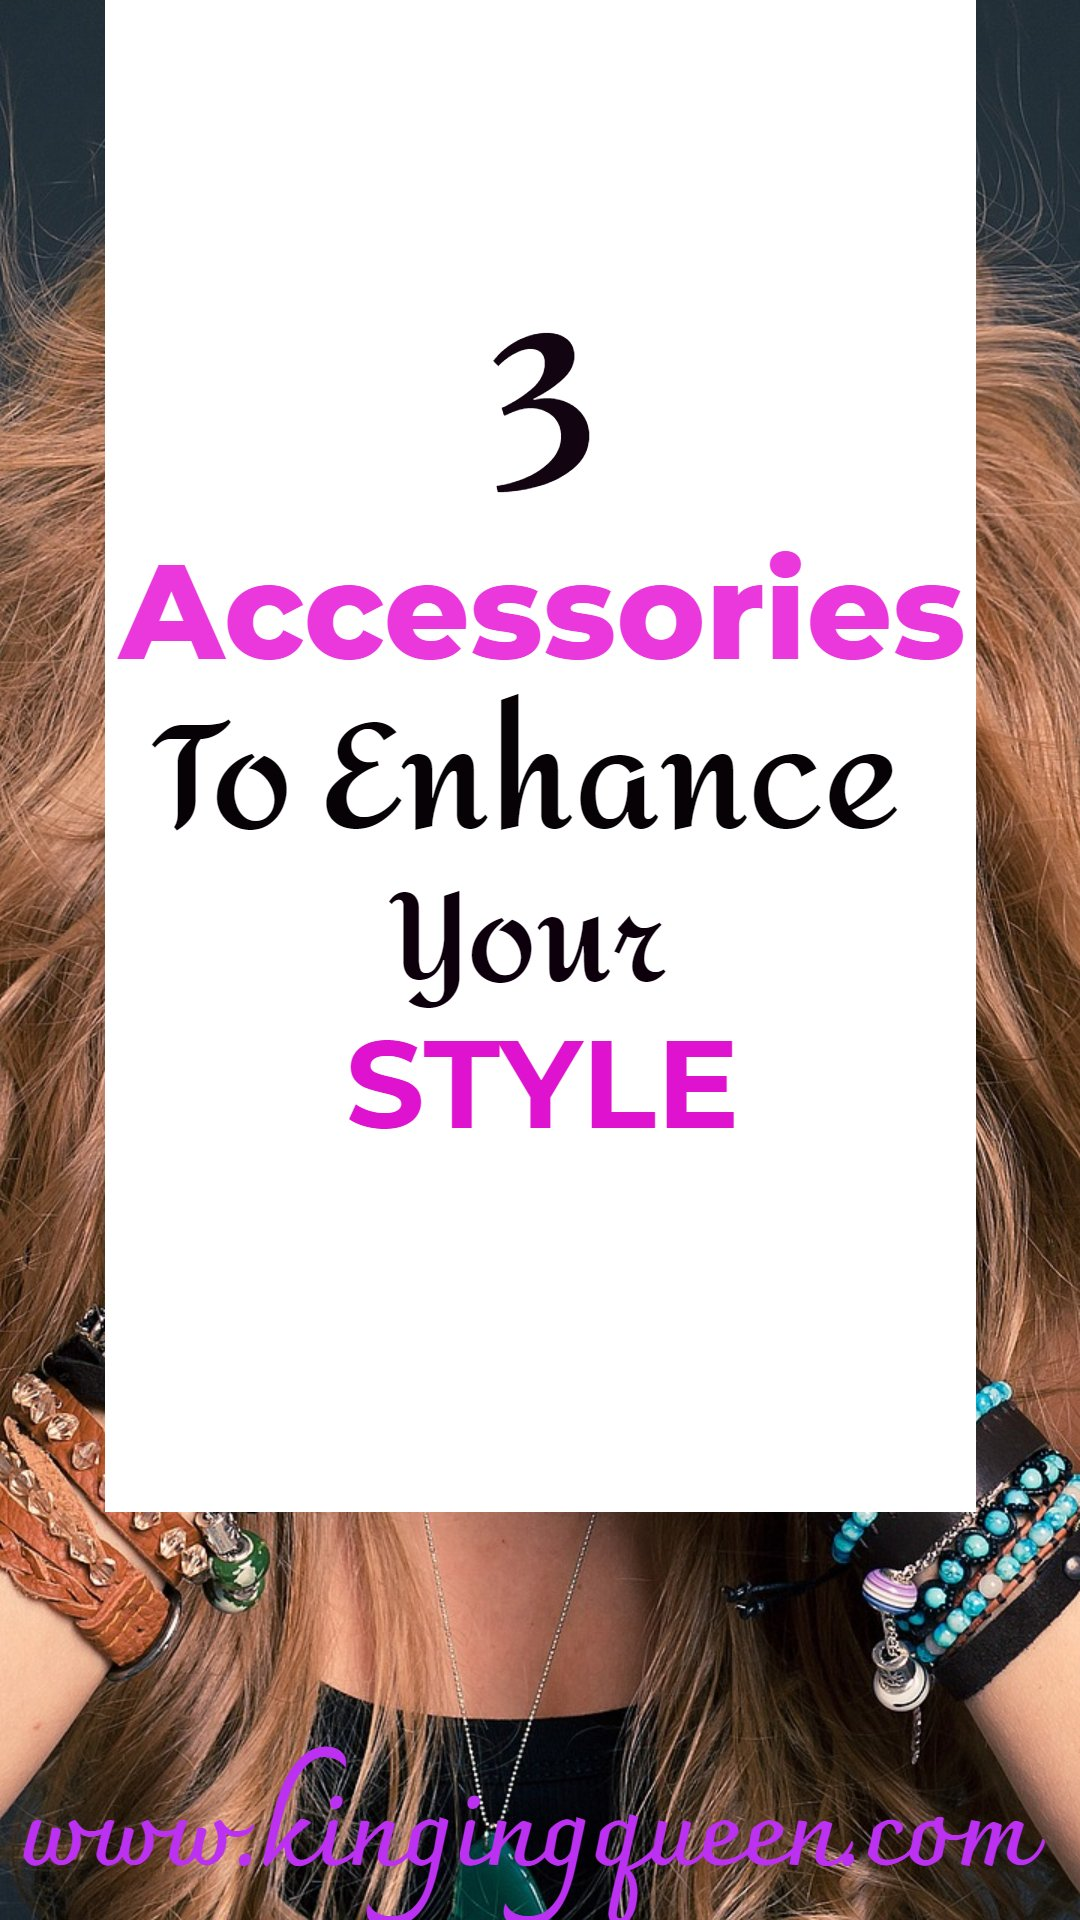 accessories to enhance your style